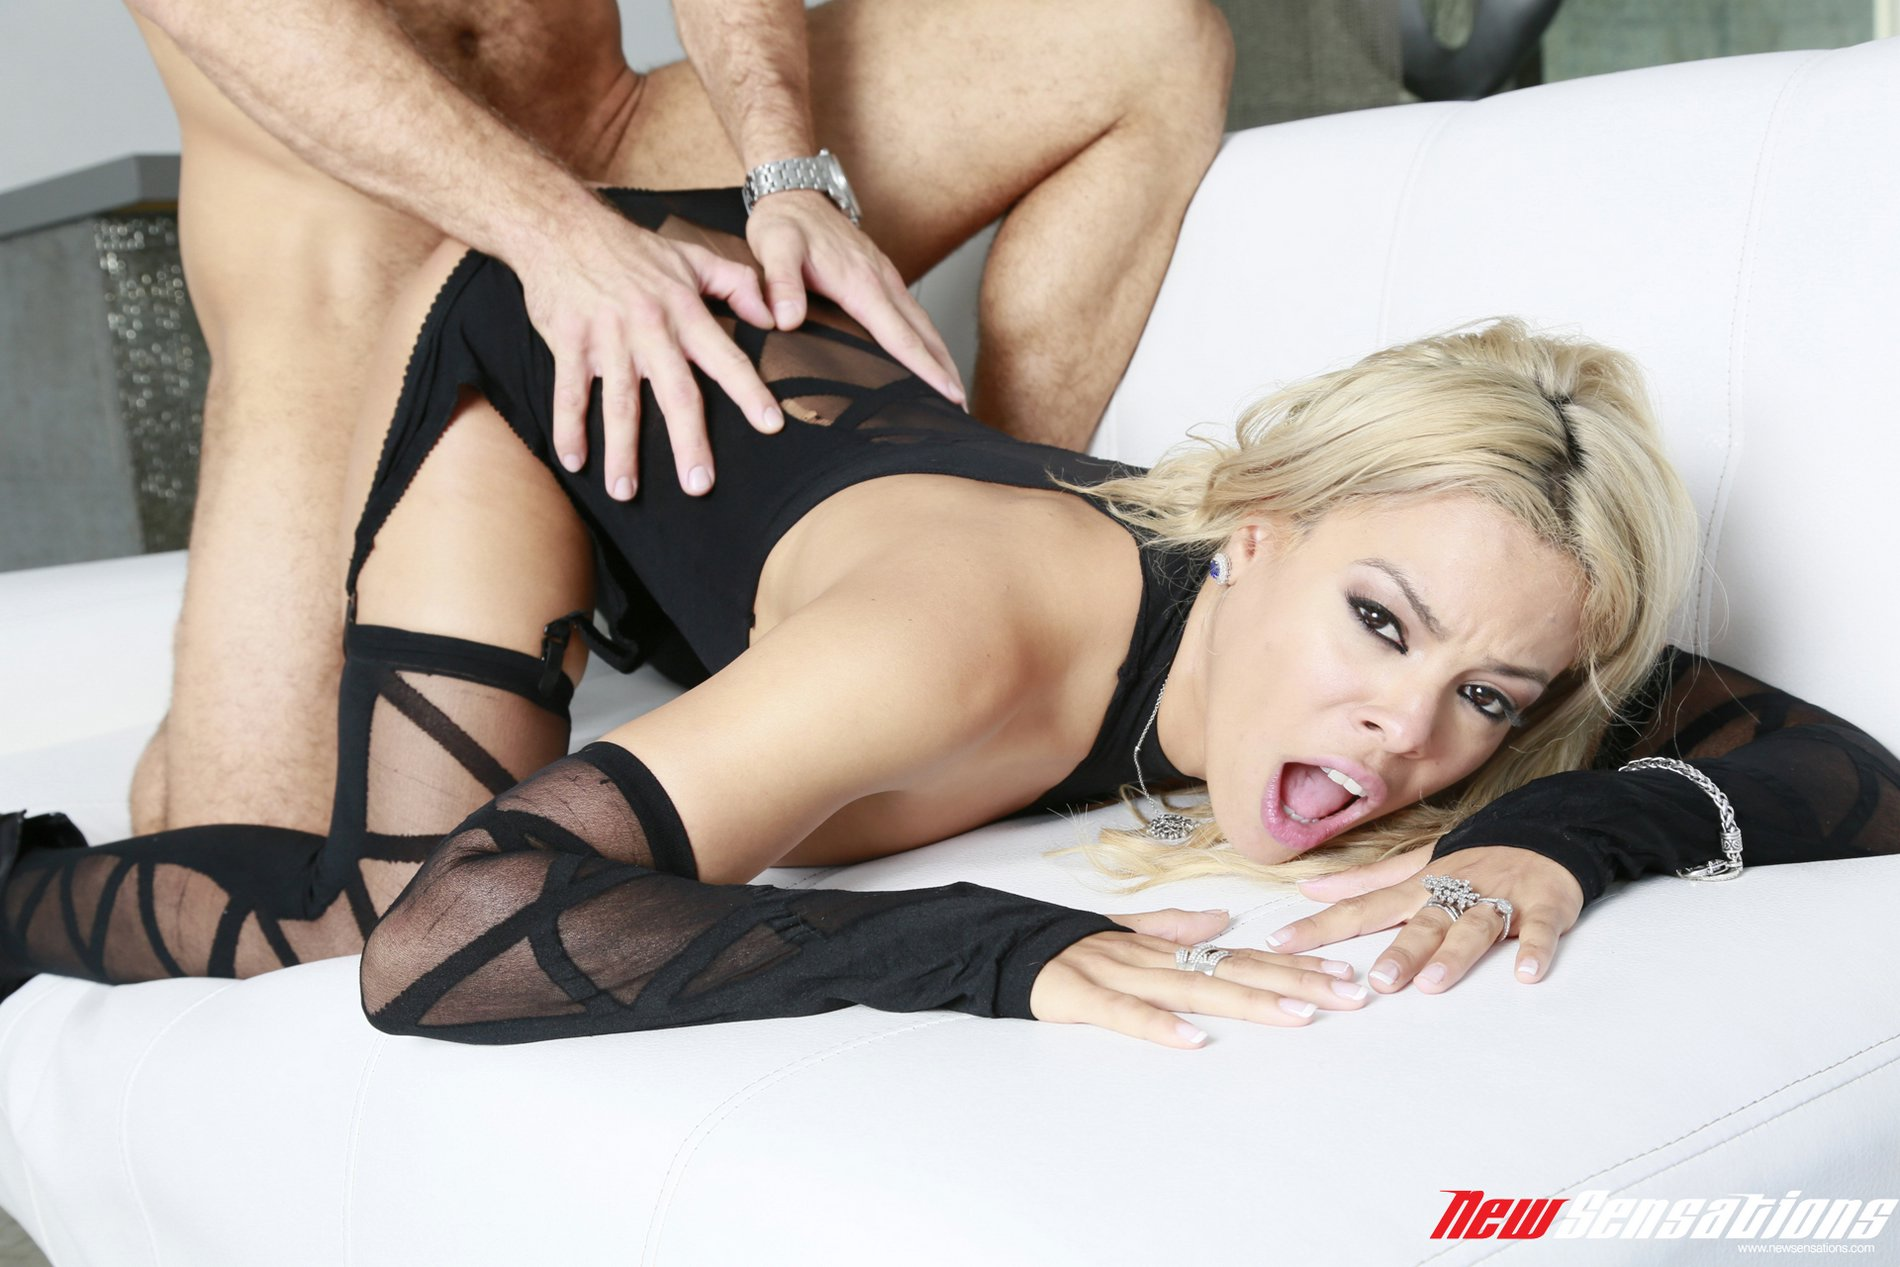 About Find a porn star stockings blonde phrase